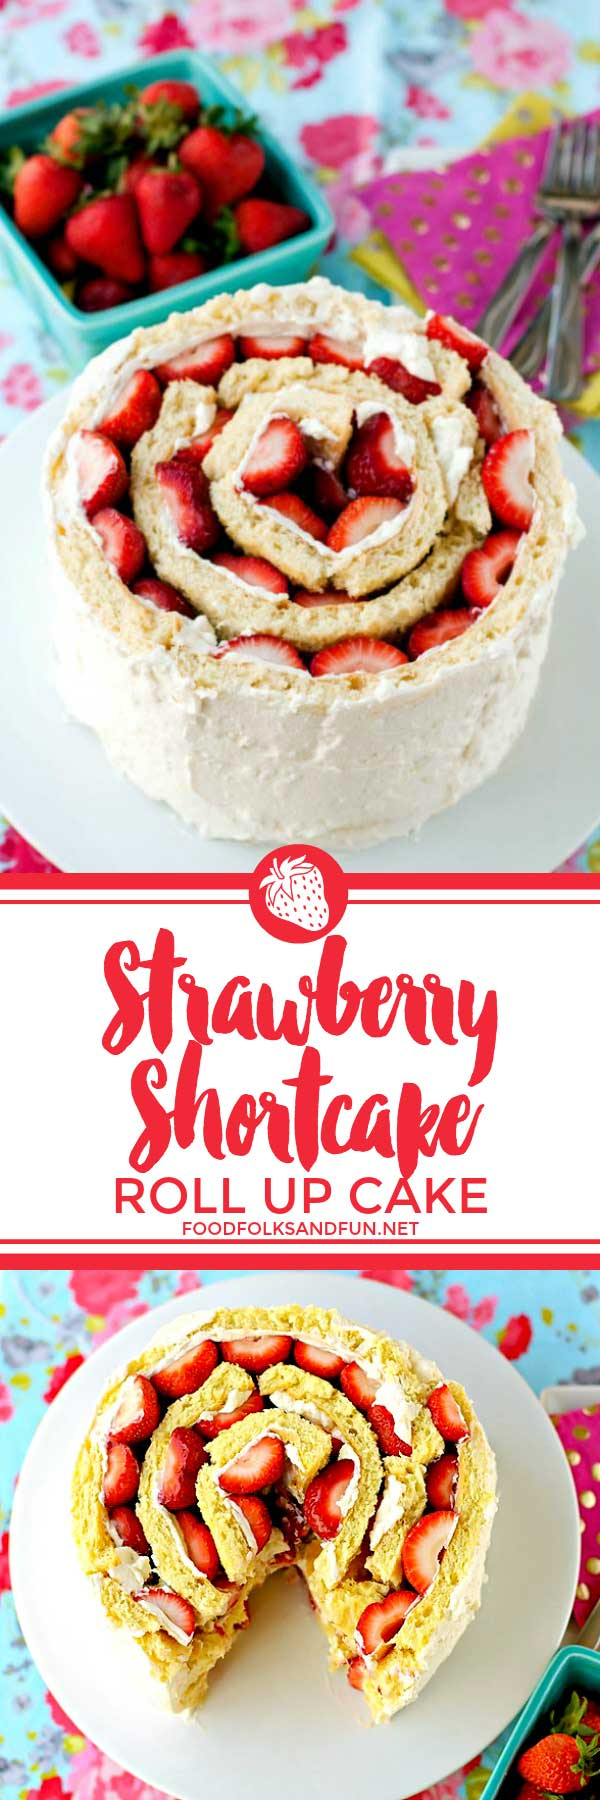 Picture collage of a whole strawberry shortcake roll up cake, and with a slice cut out of it.